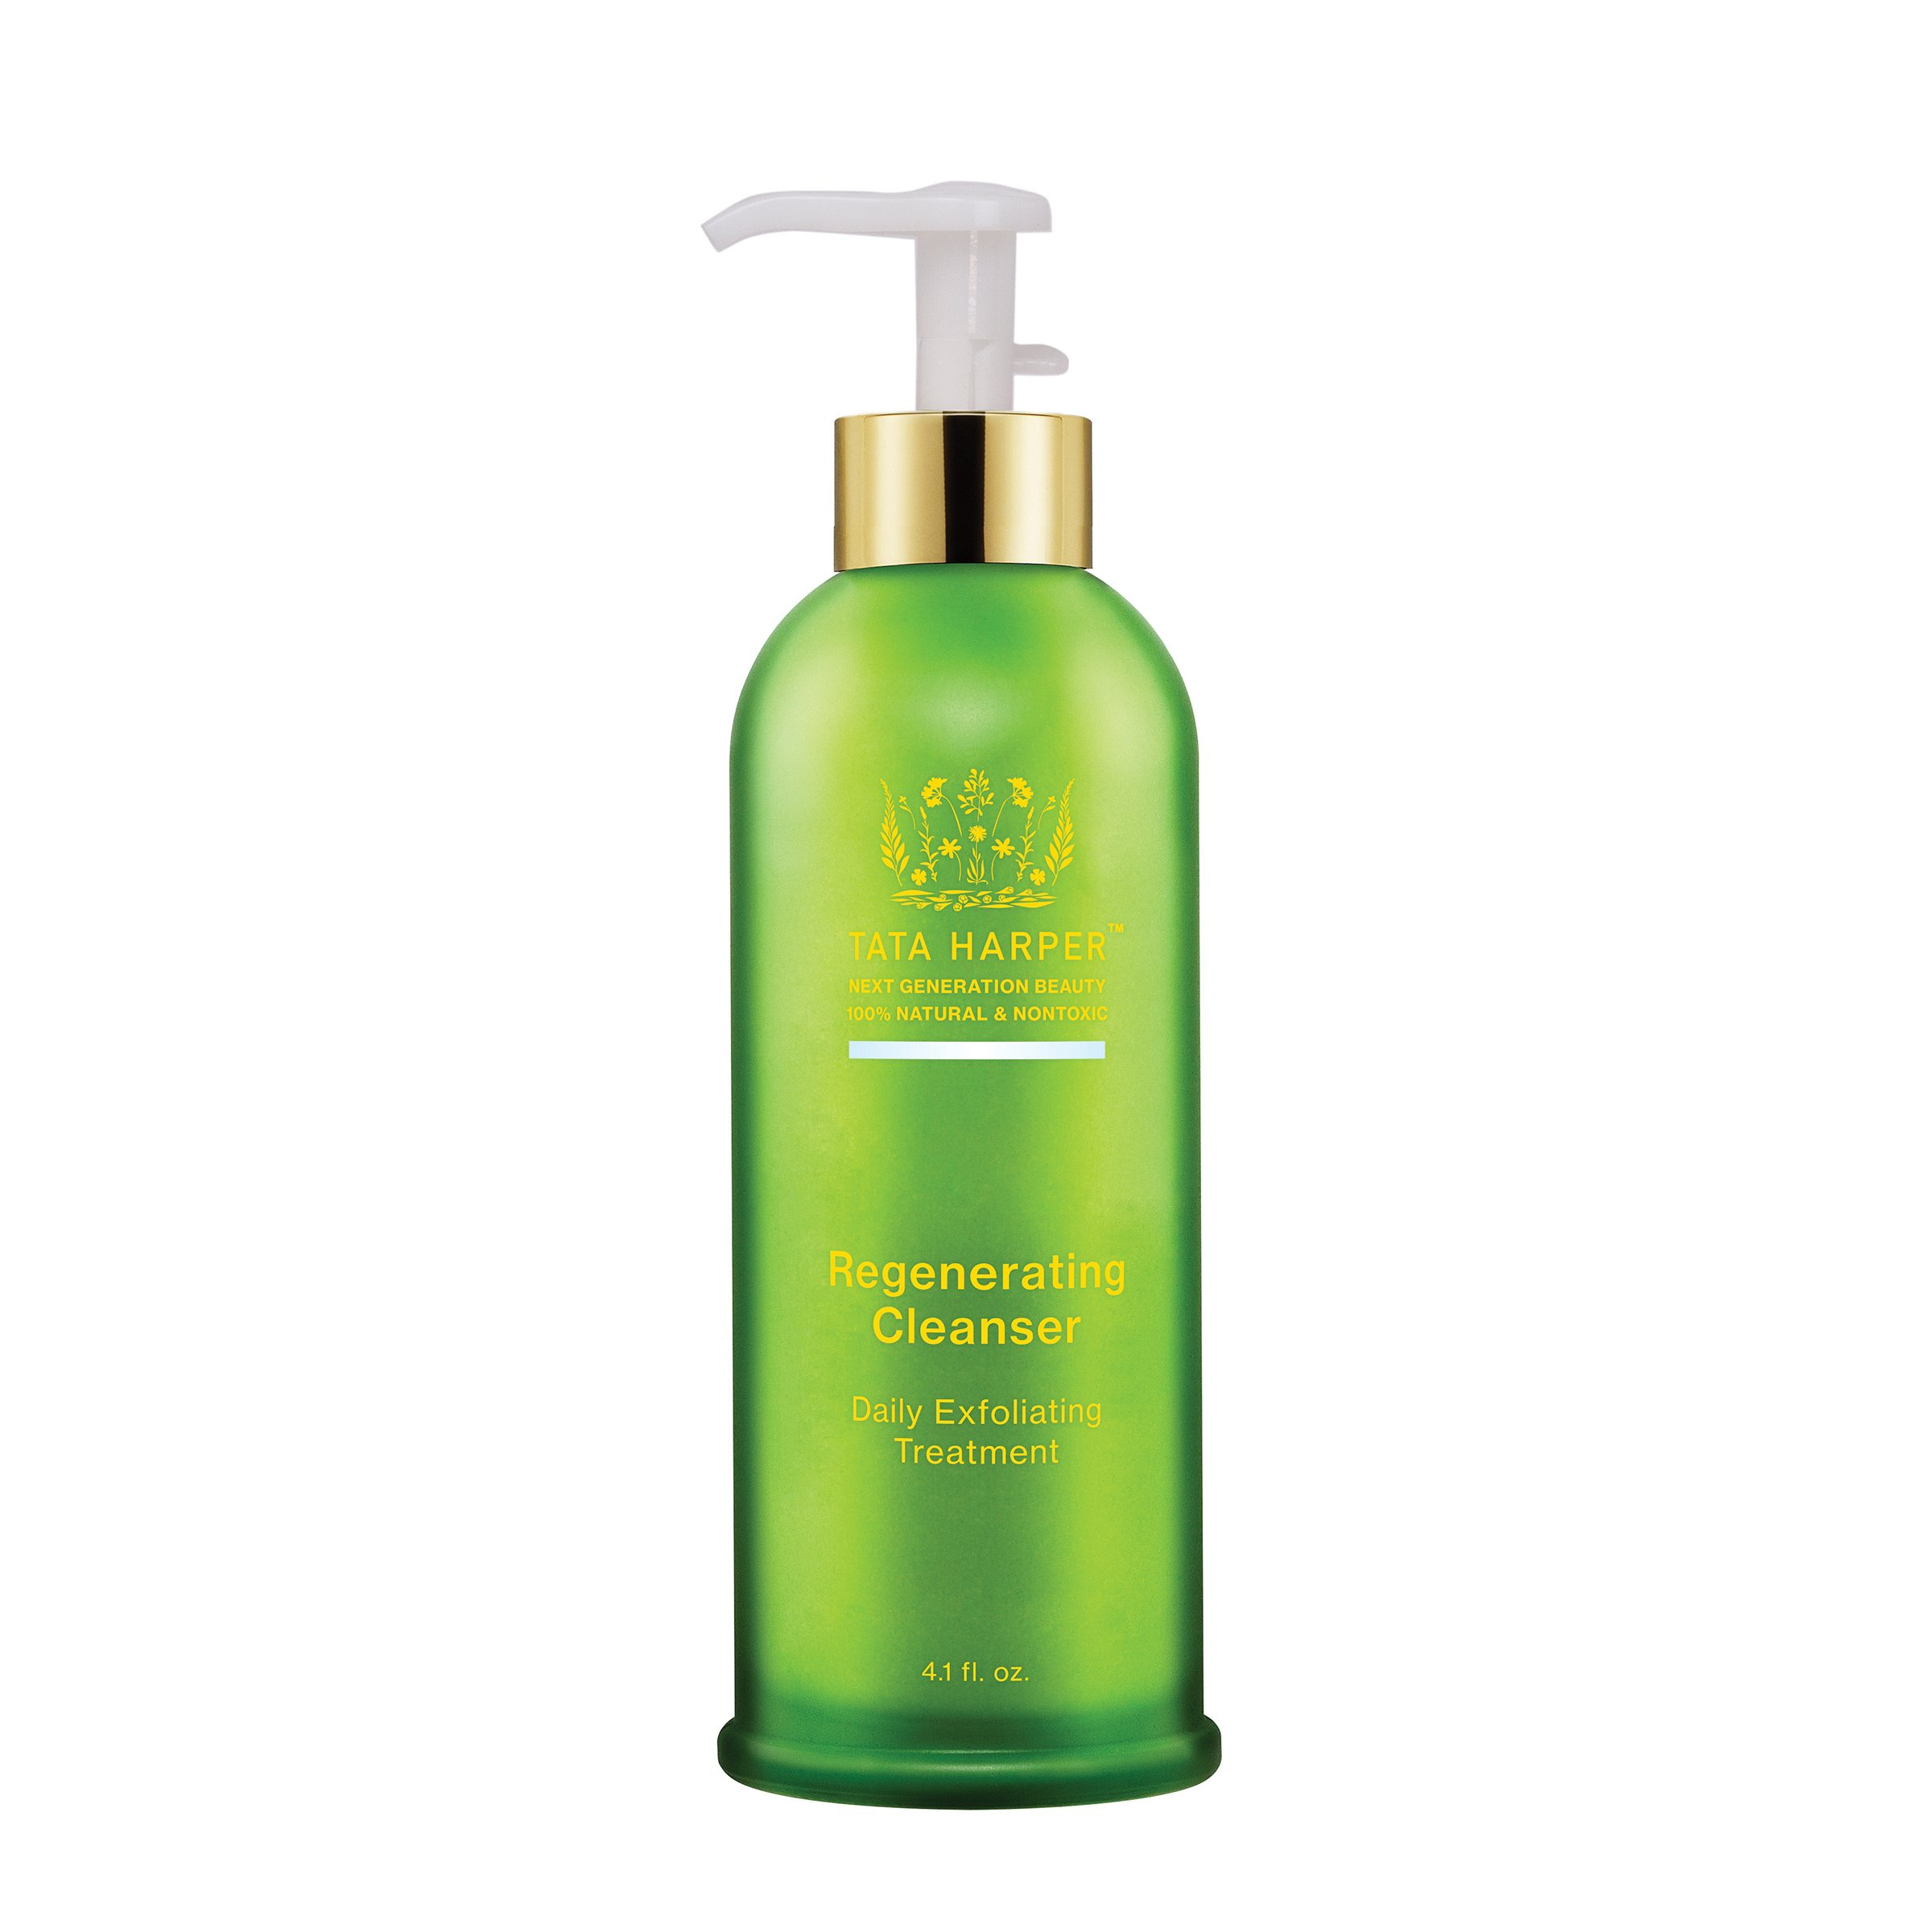 Tata Harper Regenerating Cleanser, 125 ml/4.1 fl. oz by Tata Harper (Image #1)